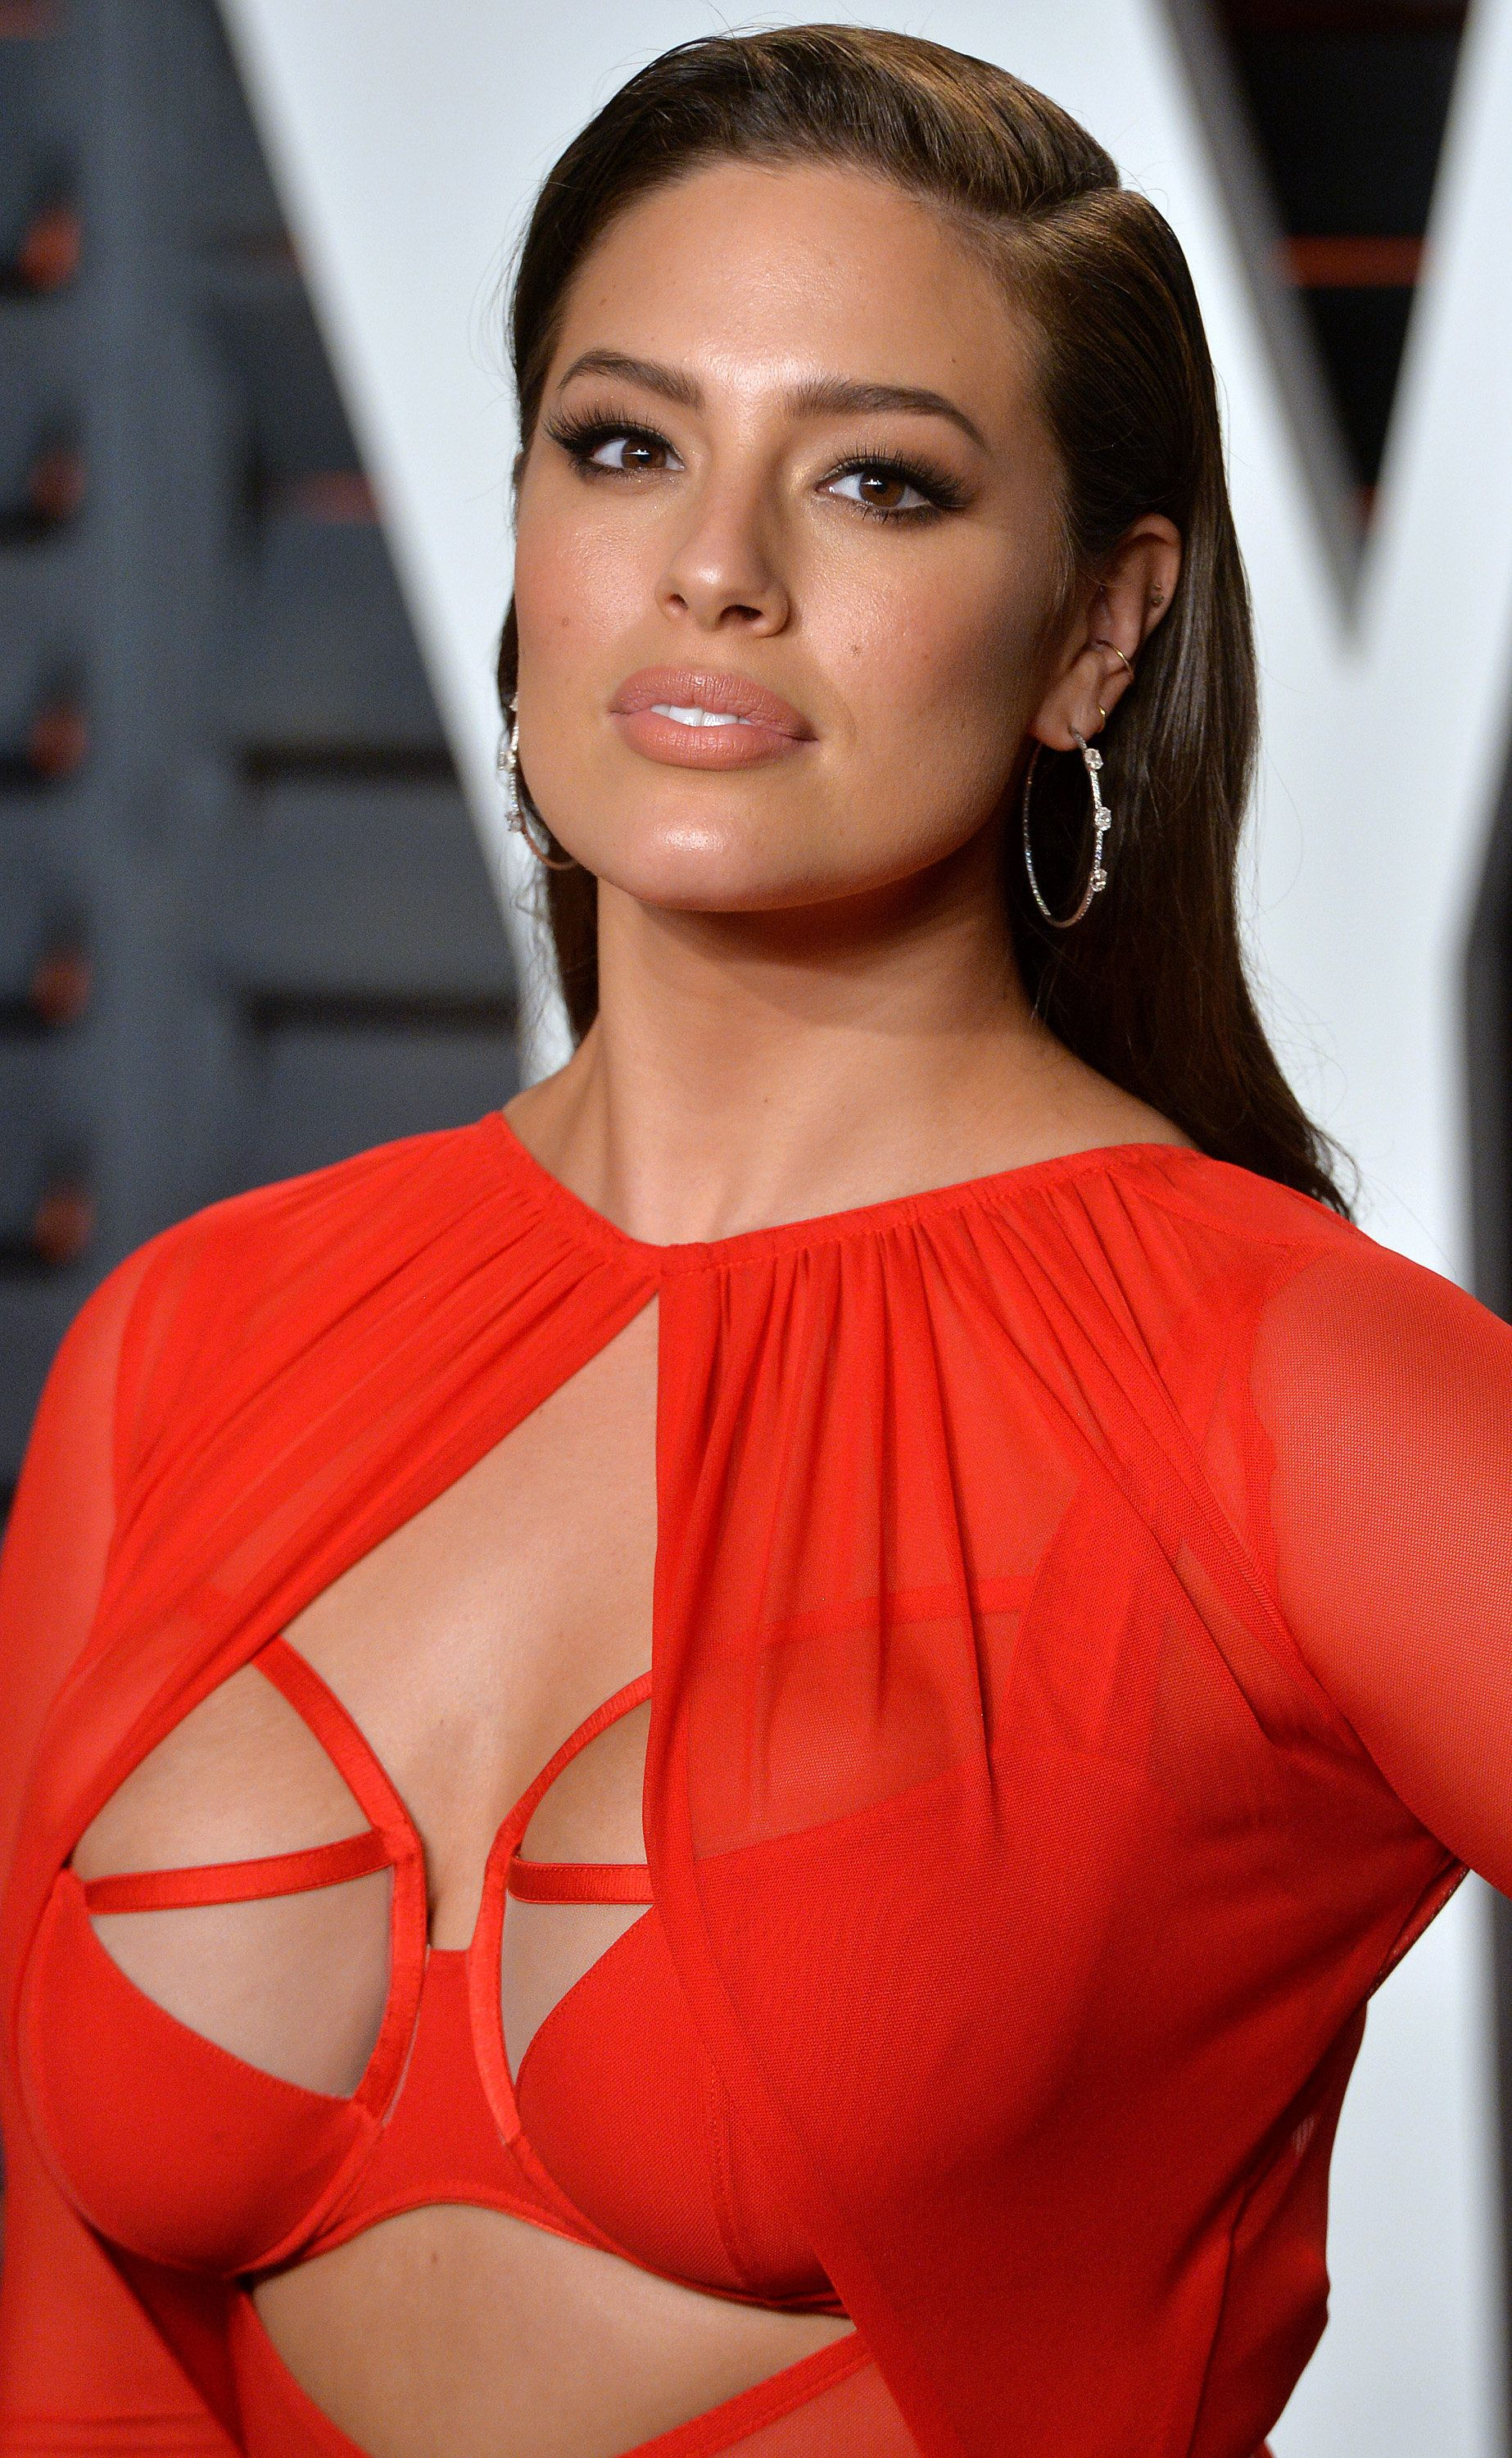 BEVERLY HILLS, CA - FEBRUARY 28:  Ashley Graham attends the 2016 Vanity Fair Oscar Party hosted By Graydon Carter at Wallis Annenberg Center for the Performing Arts on February 28, 2016 in Beverly Hills, California.  (Photo by Anthony Harvey/Getty Images)